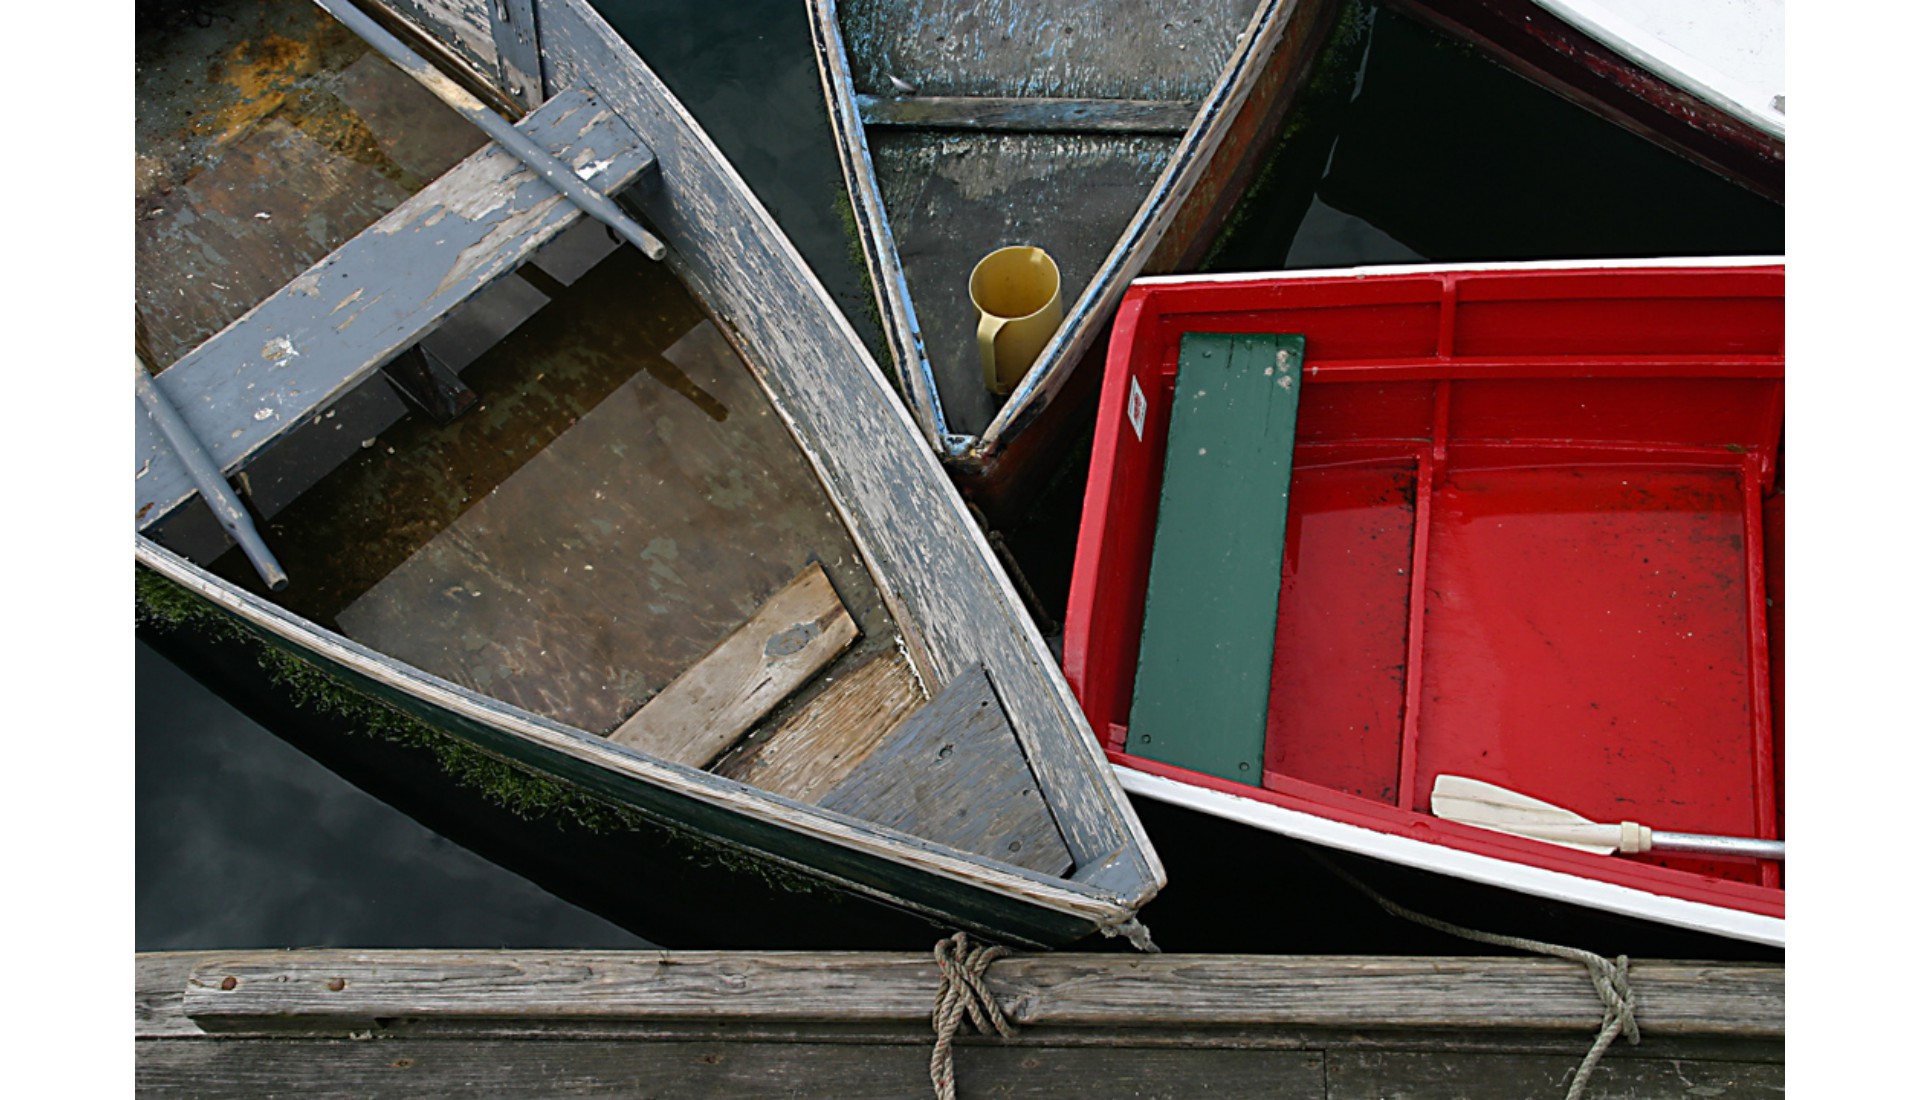 Rowboats, Rockport, MA, 2007